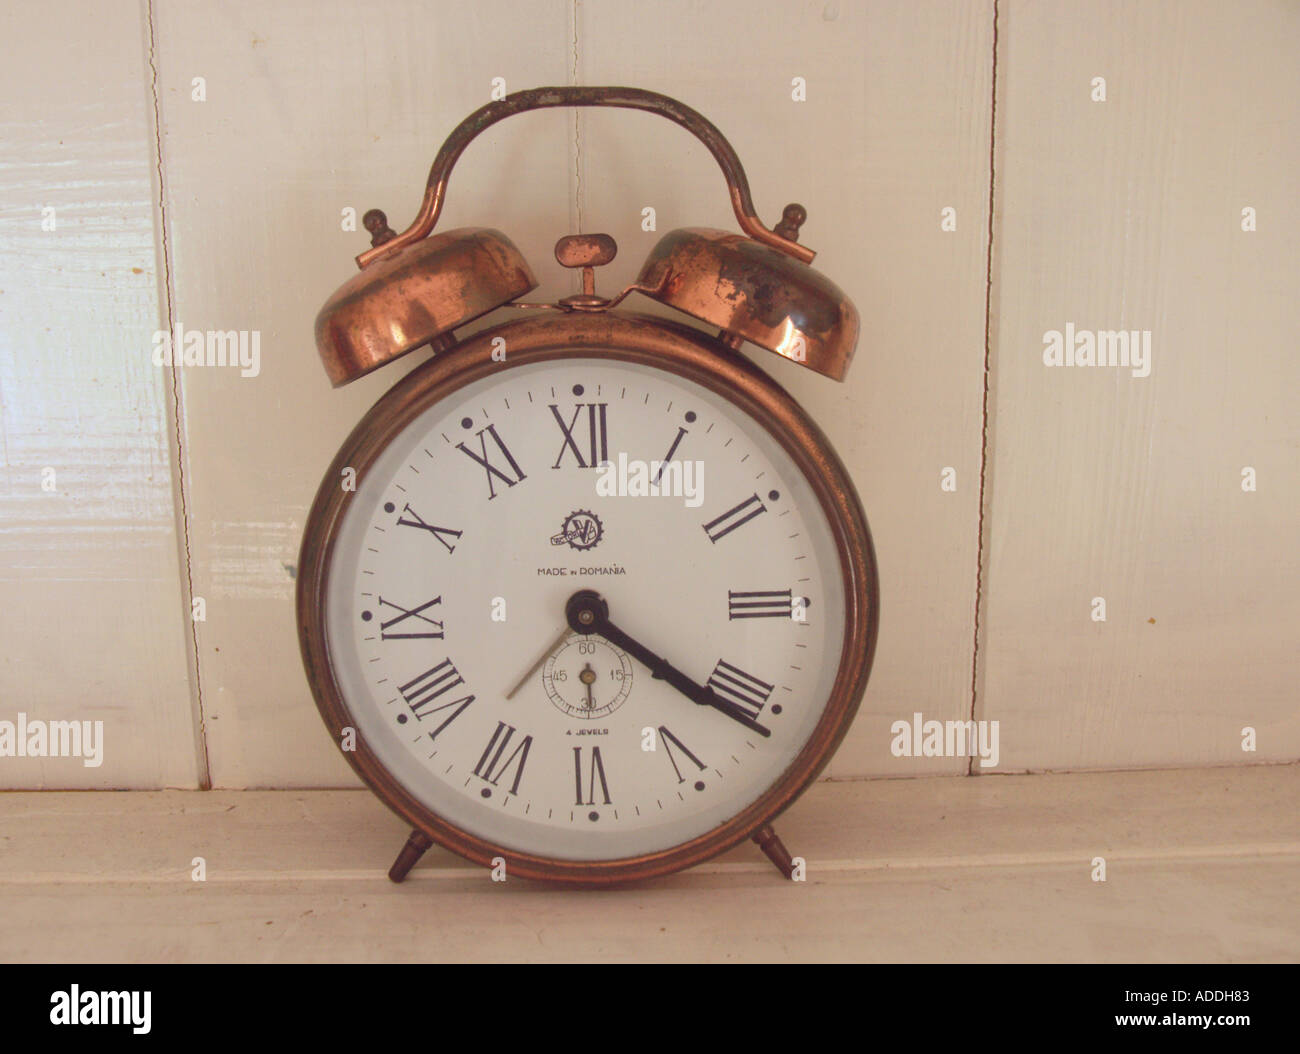 Old brass clock face with hands and roman numerals - Stock Image